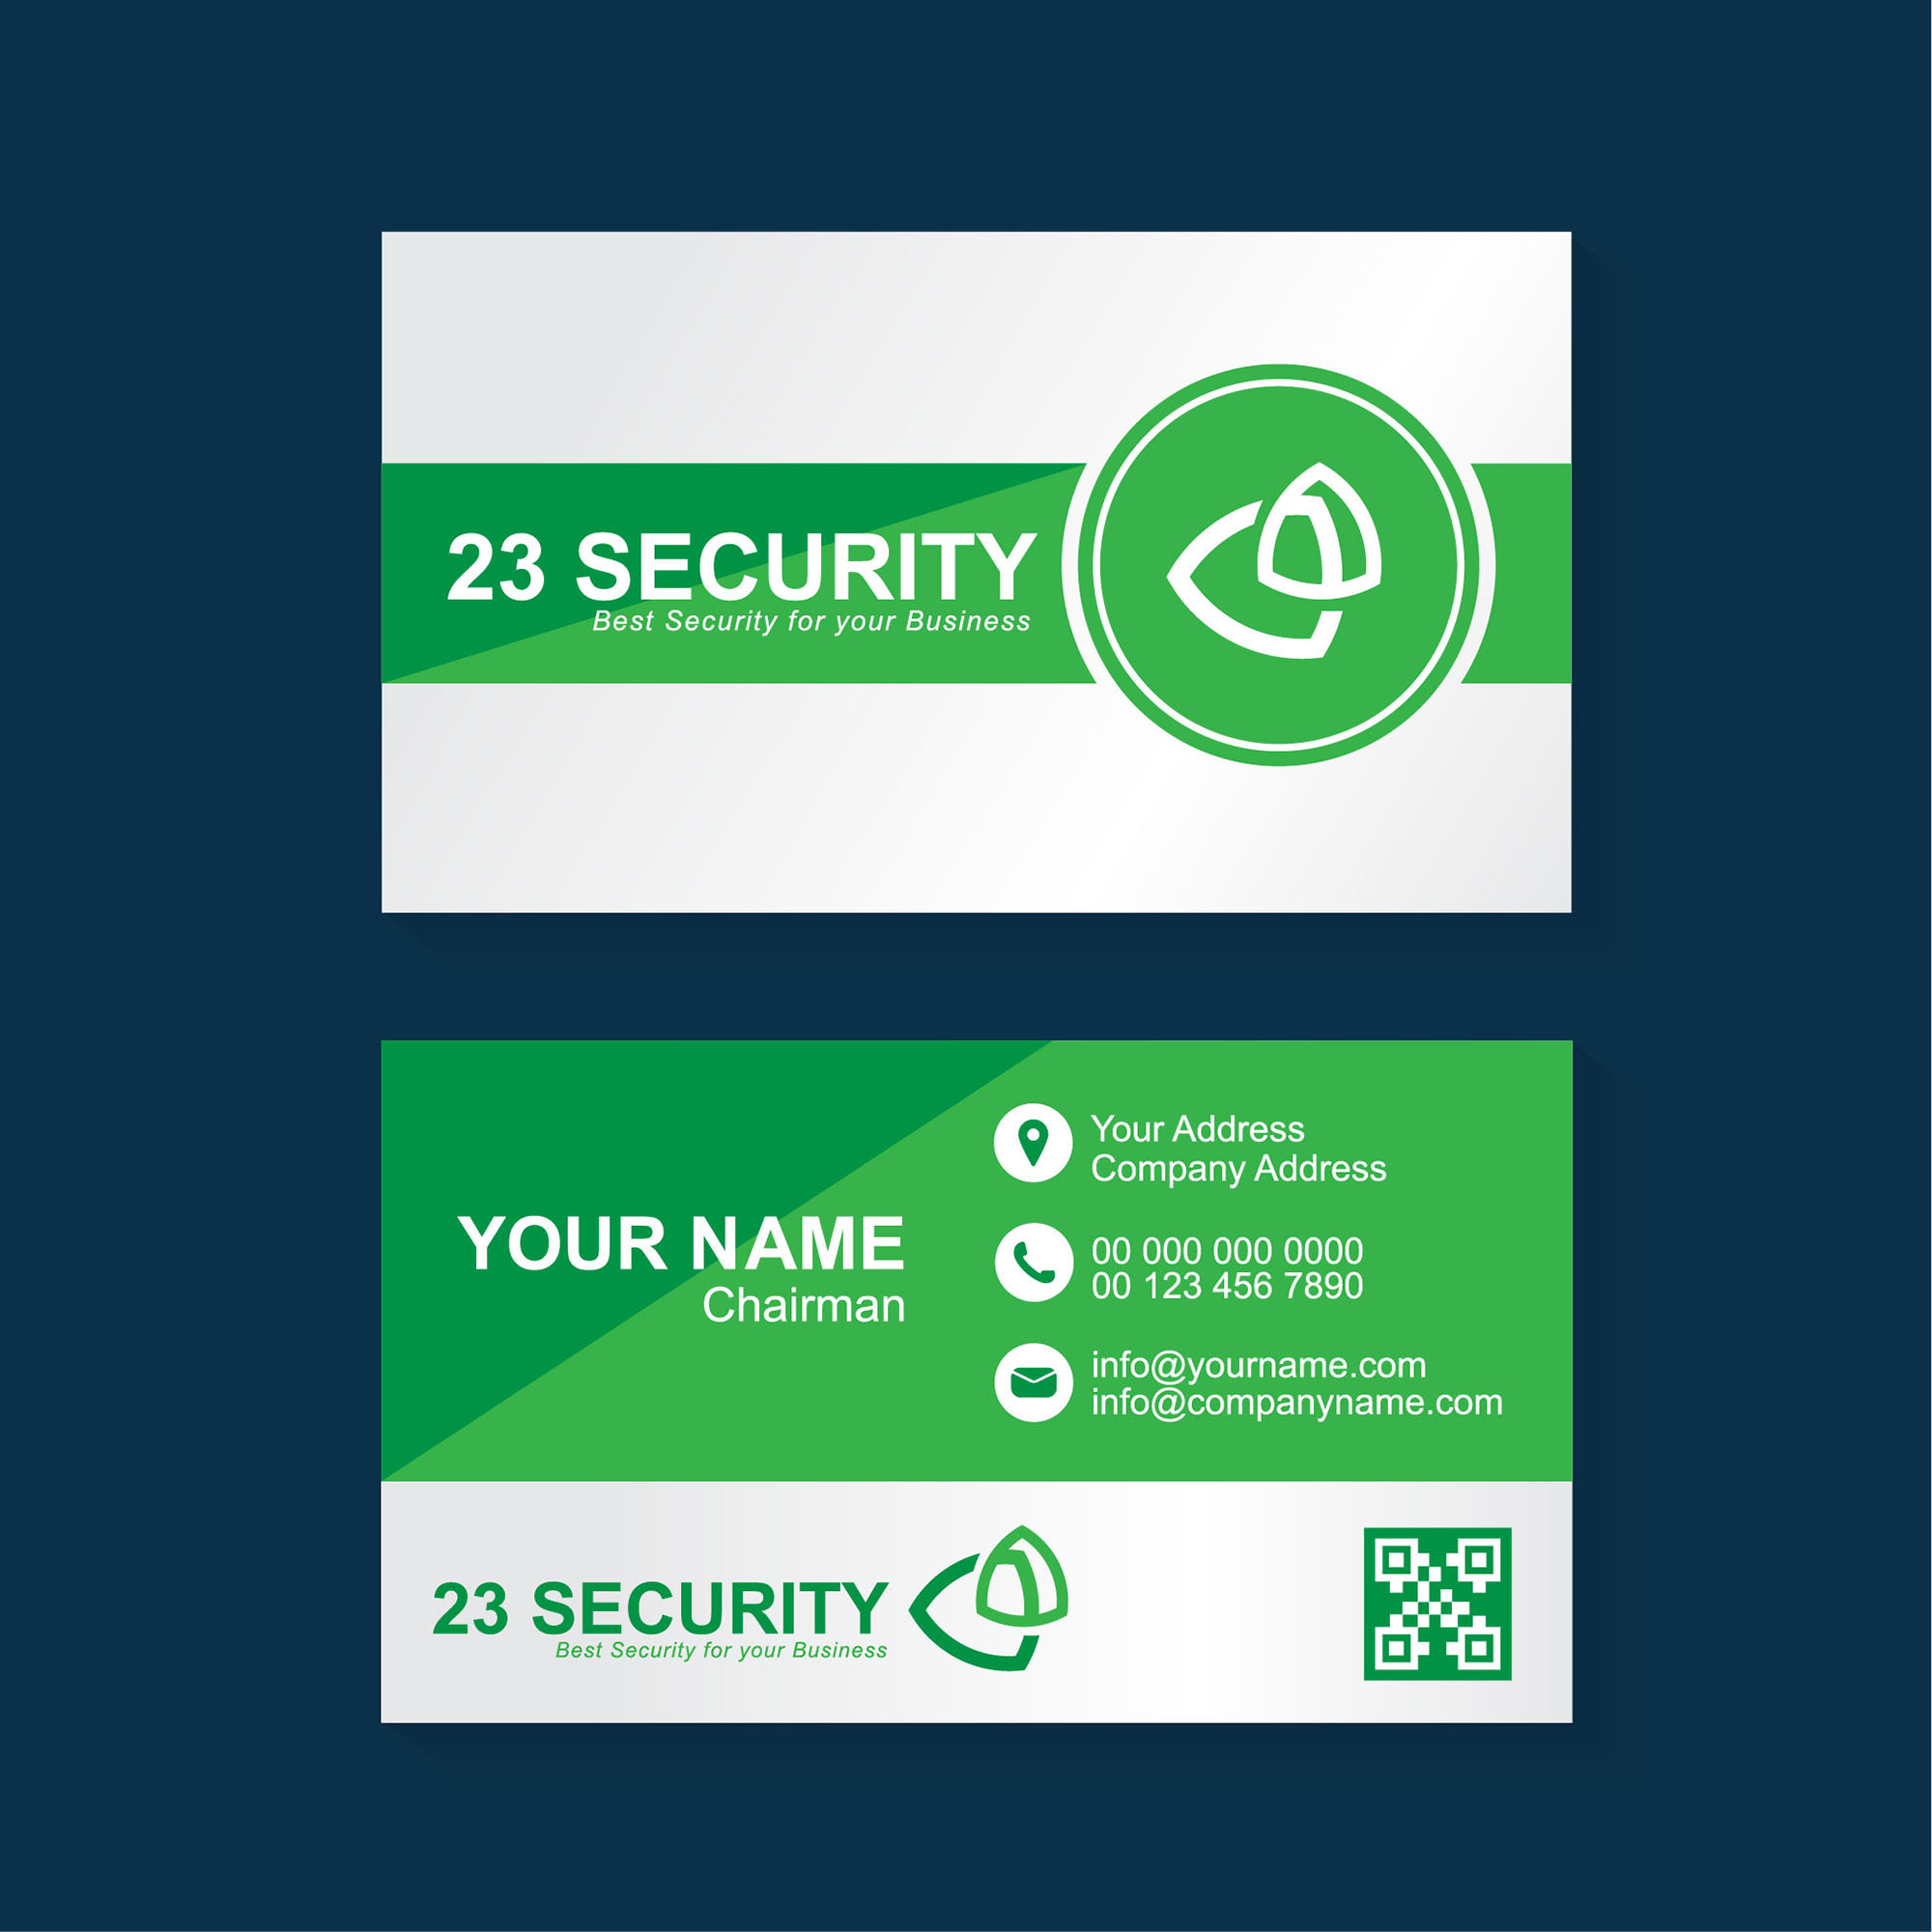 Security business card template free download wisxi business card business cards business card design business card template design templates flashek Image collections